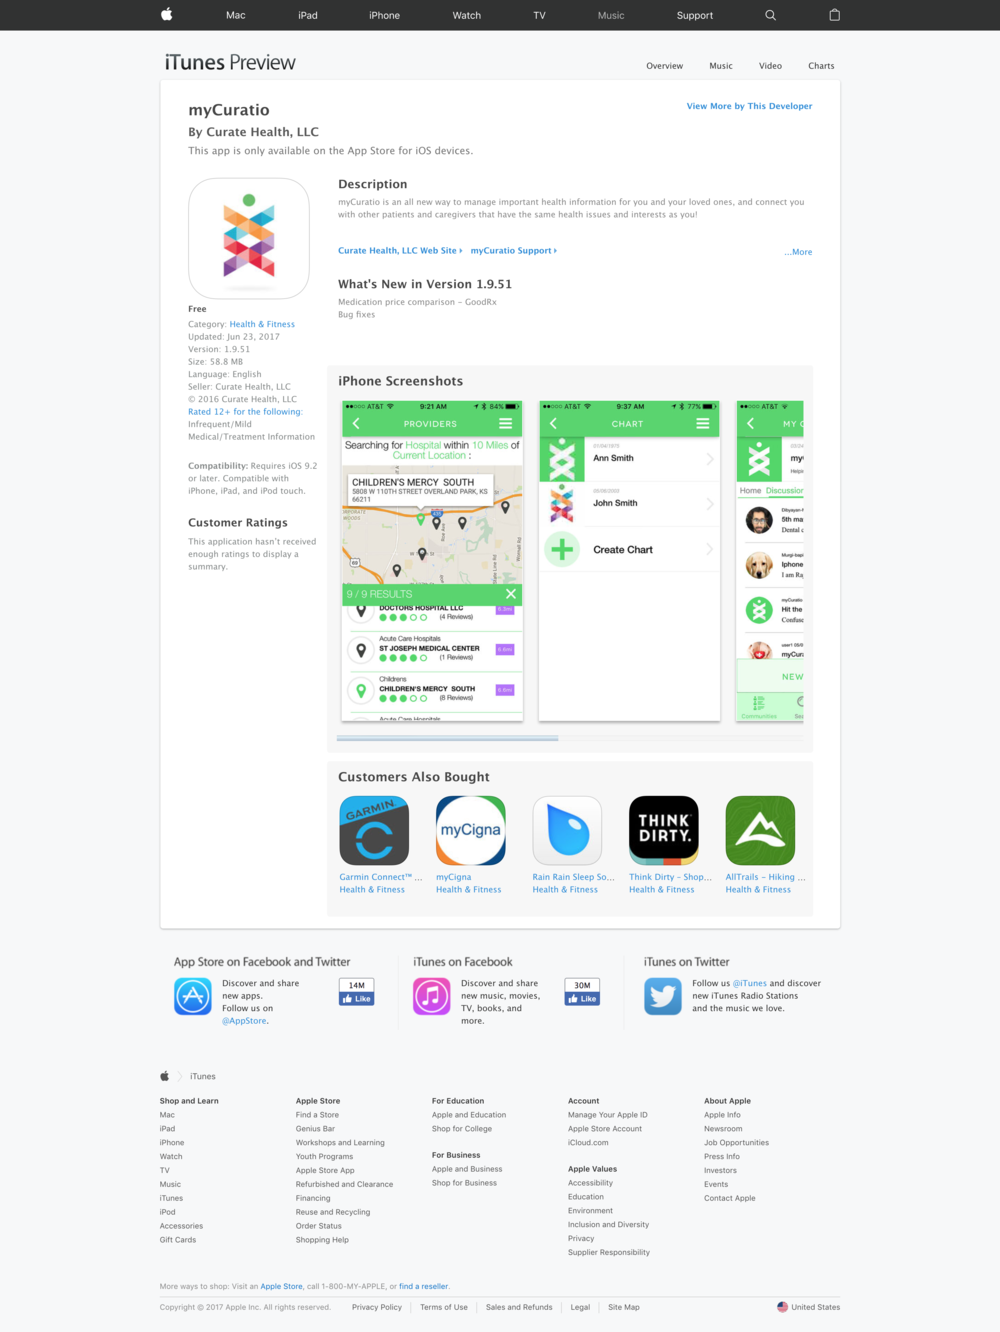 iOS App Store Page